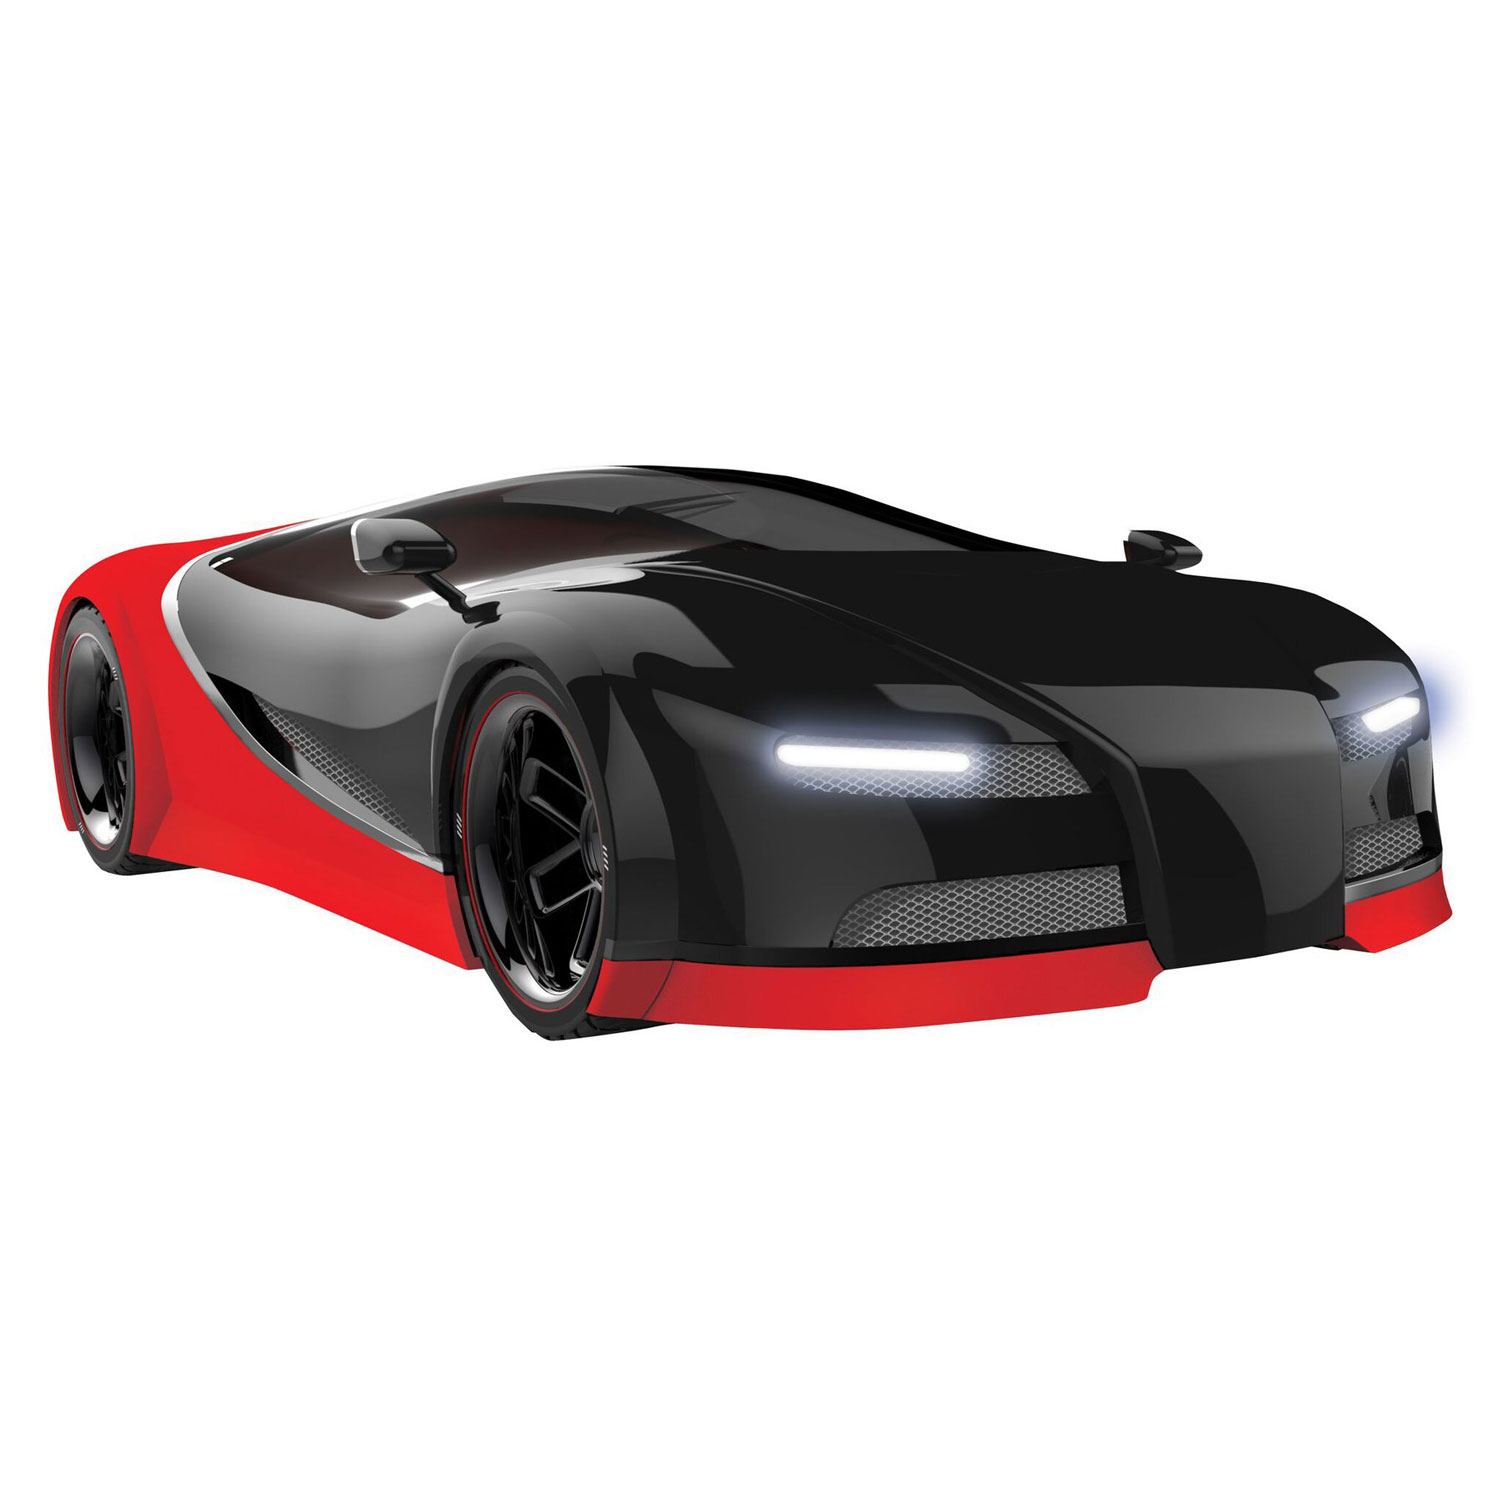 FAO F.A.O 2.4GHZ Schwarz Sports Italia Car LED Headlights and Brakes Lights 1:50 Scale Red in Color Remote Control Car